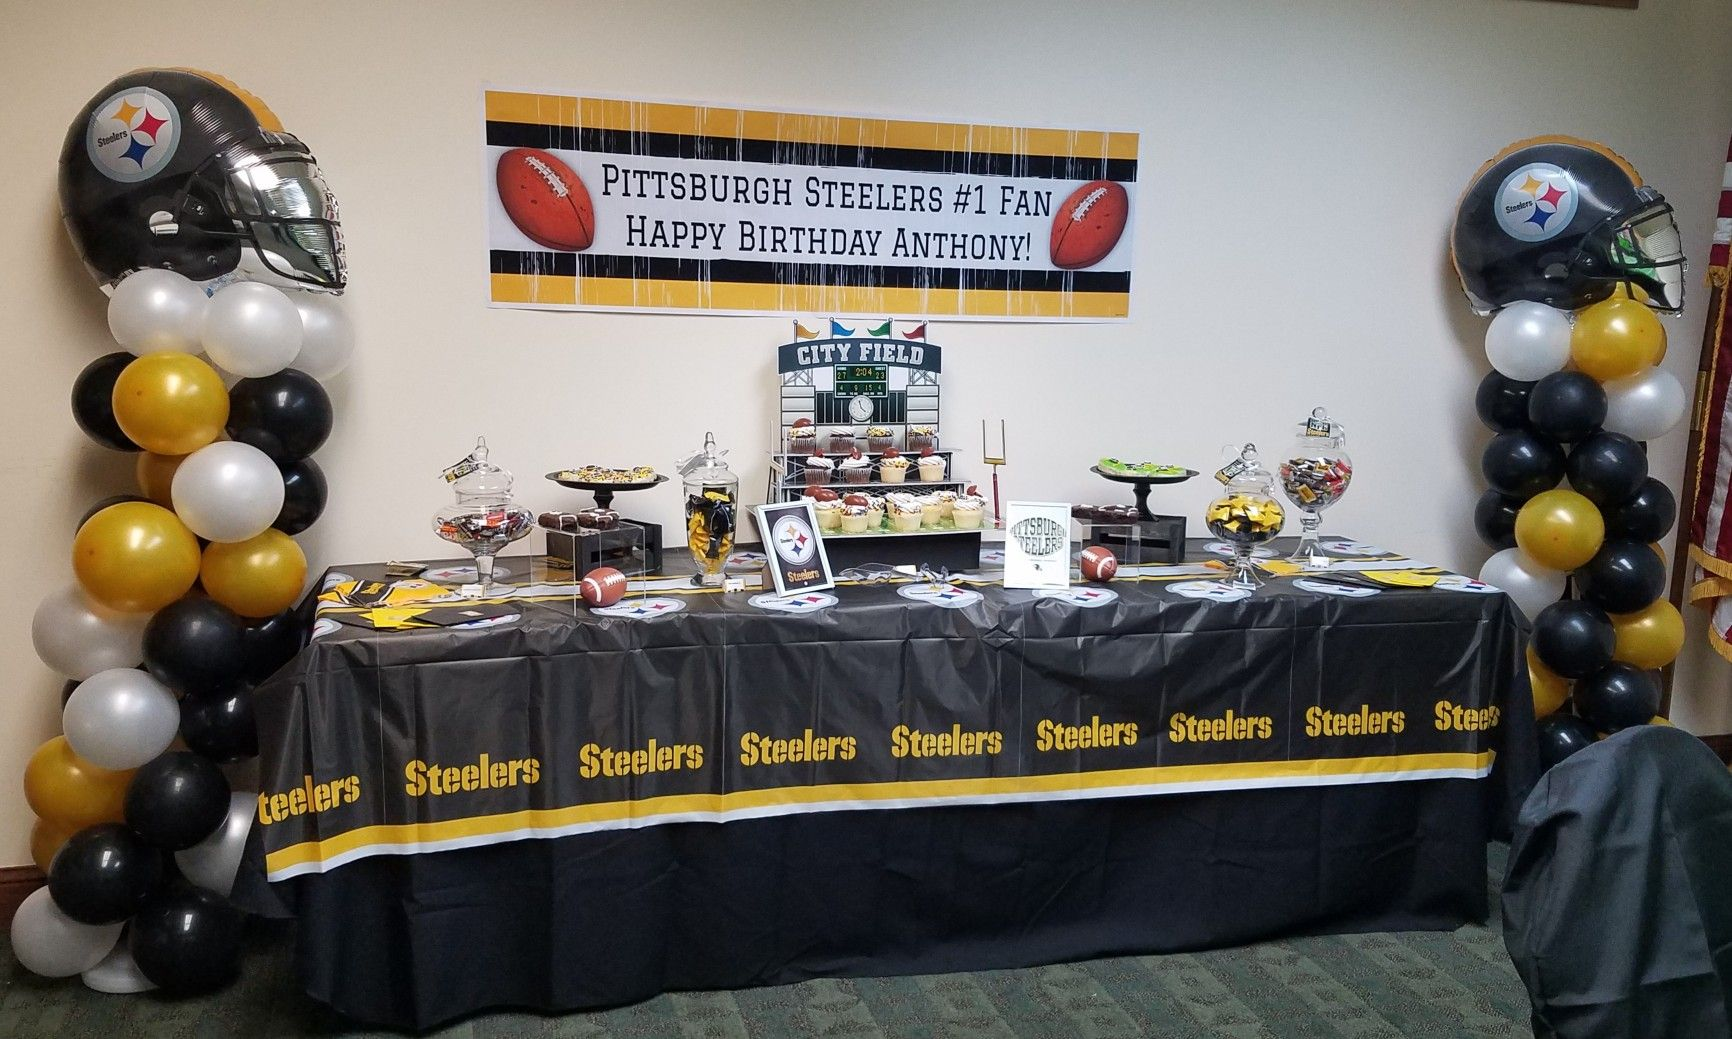 Pittsburgh Steelers Decorating Ideas - Home Decorating Ideas